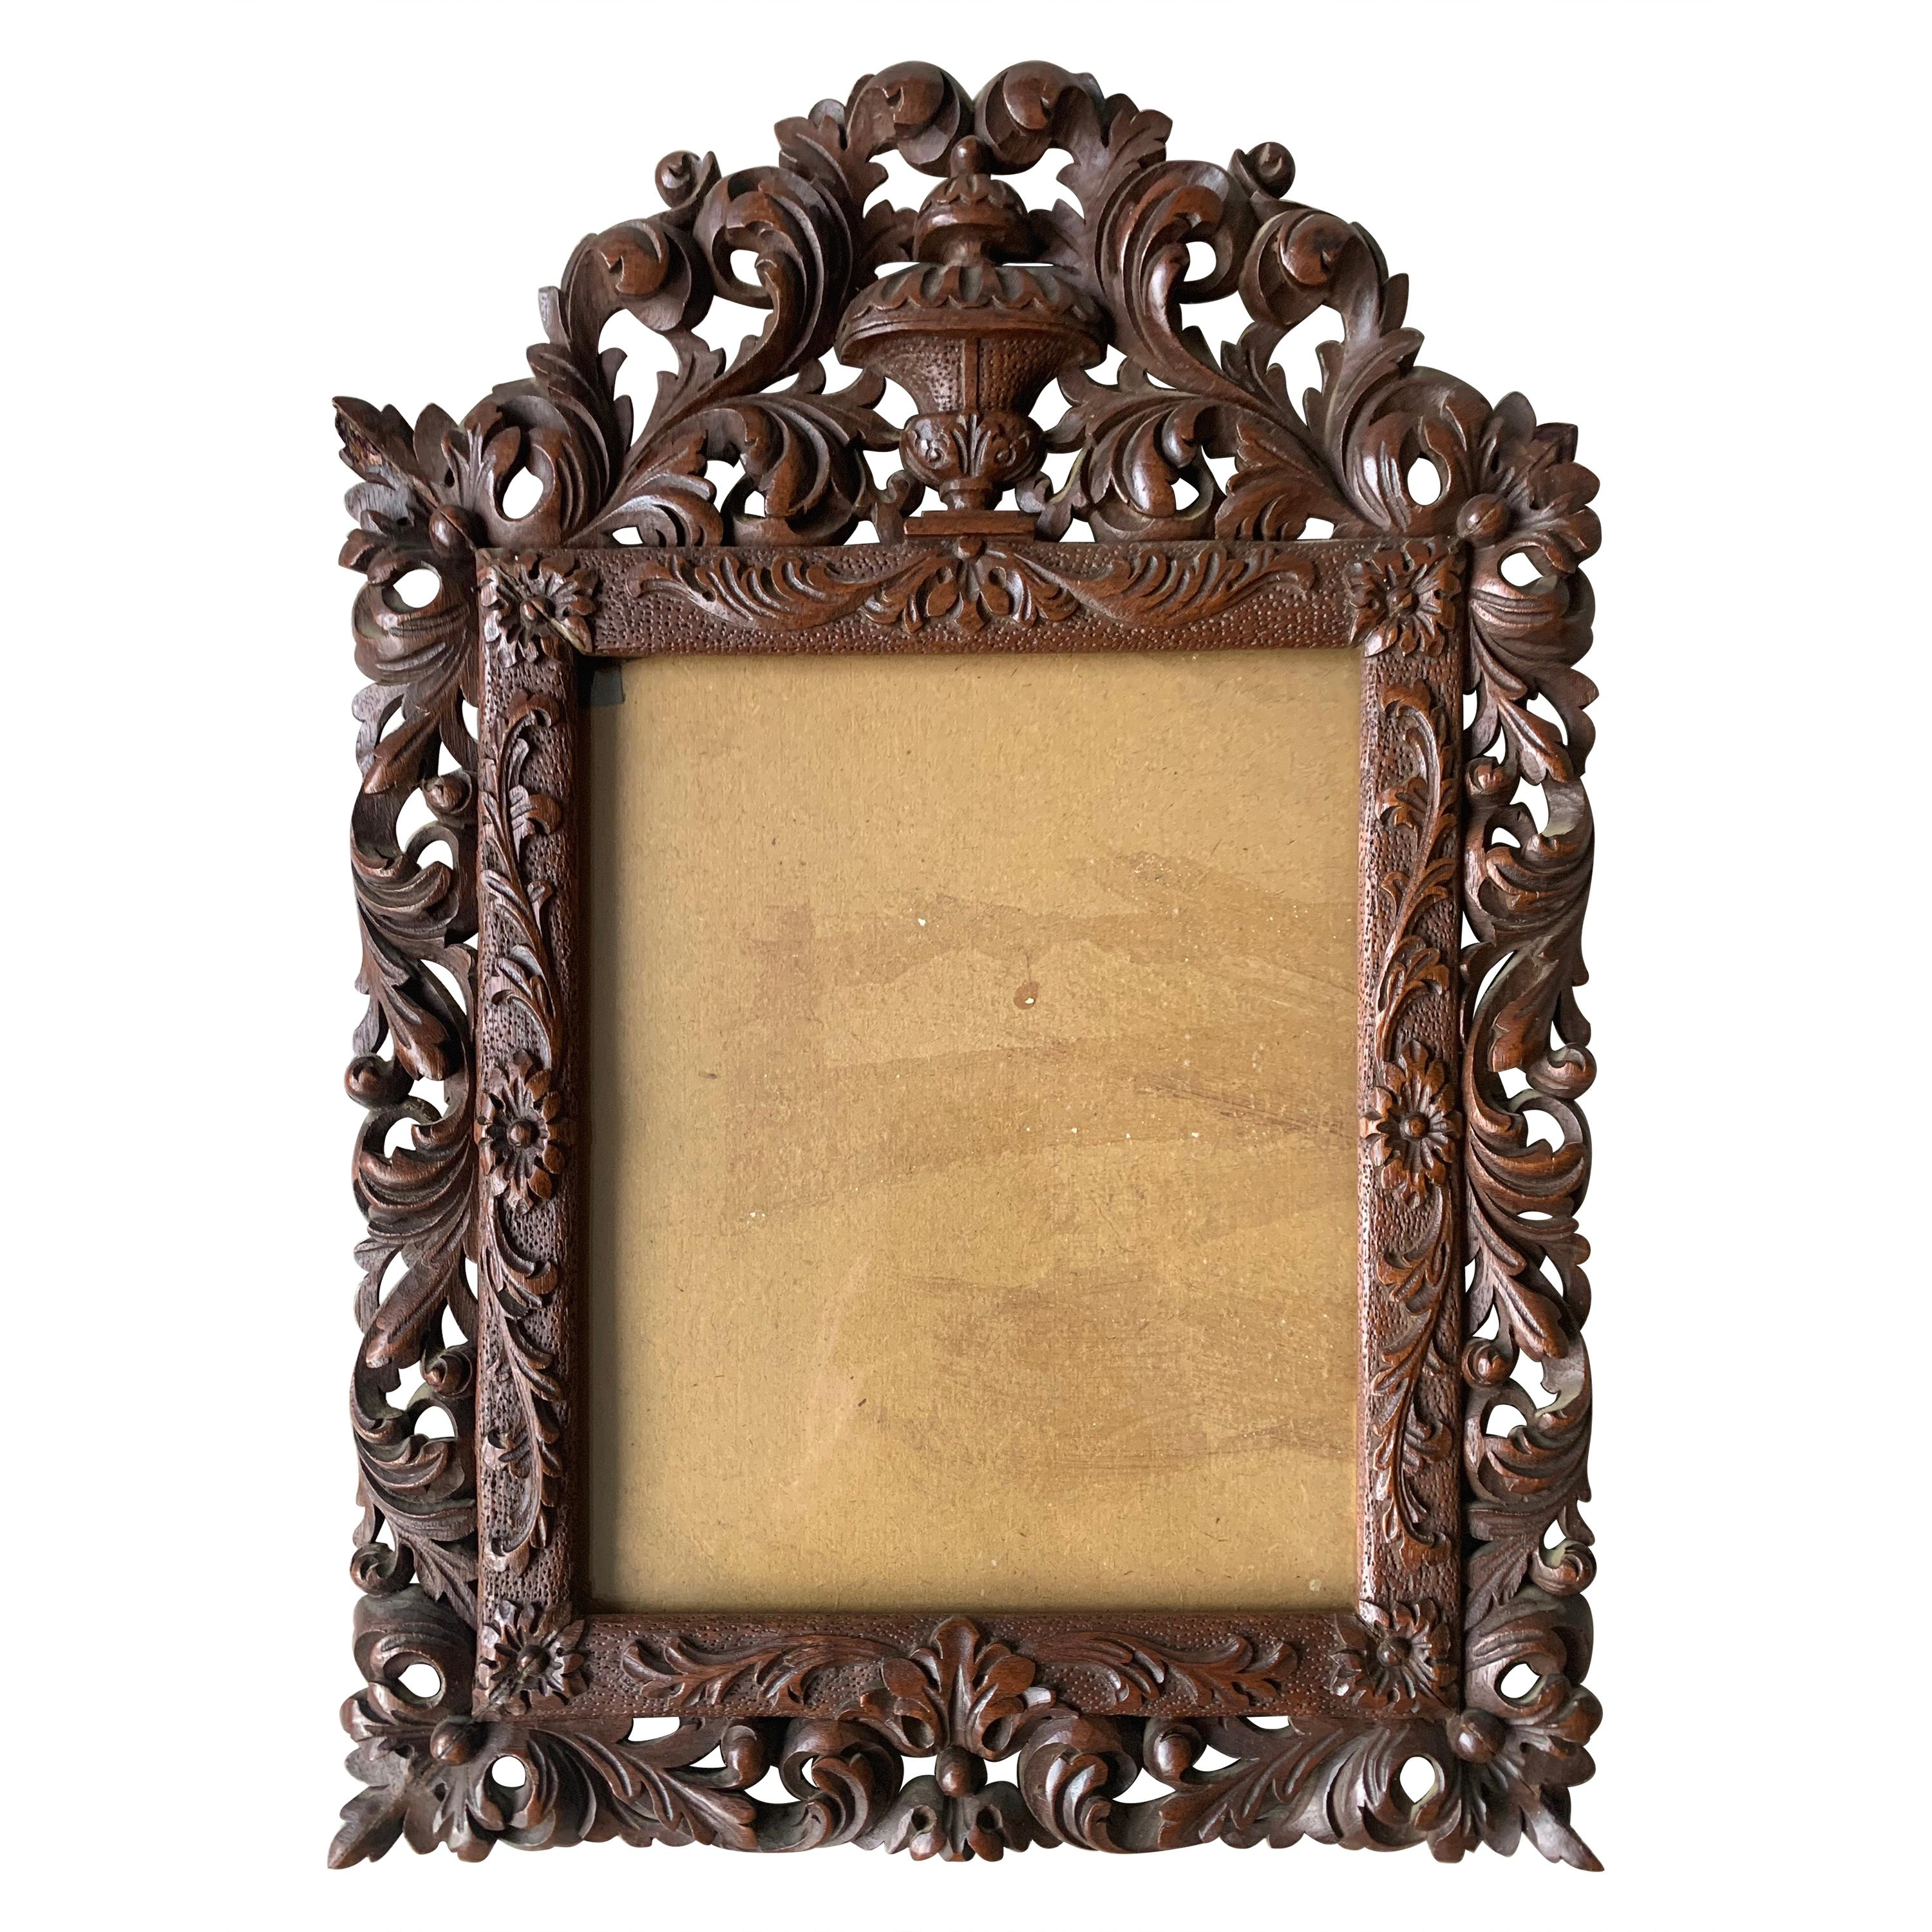 Richly Carved Baroque Revival Italian Picture Frame with Scrolling Leaves & Vase